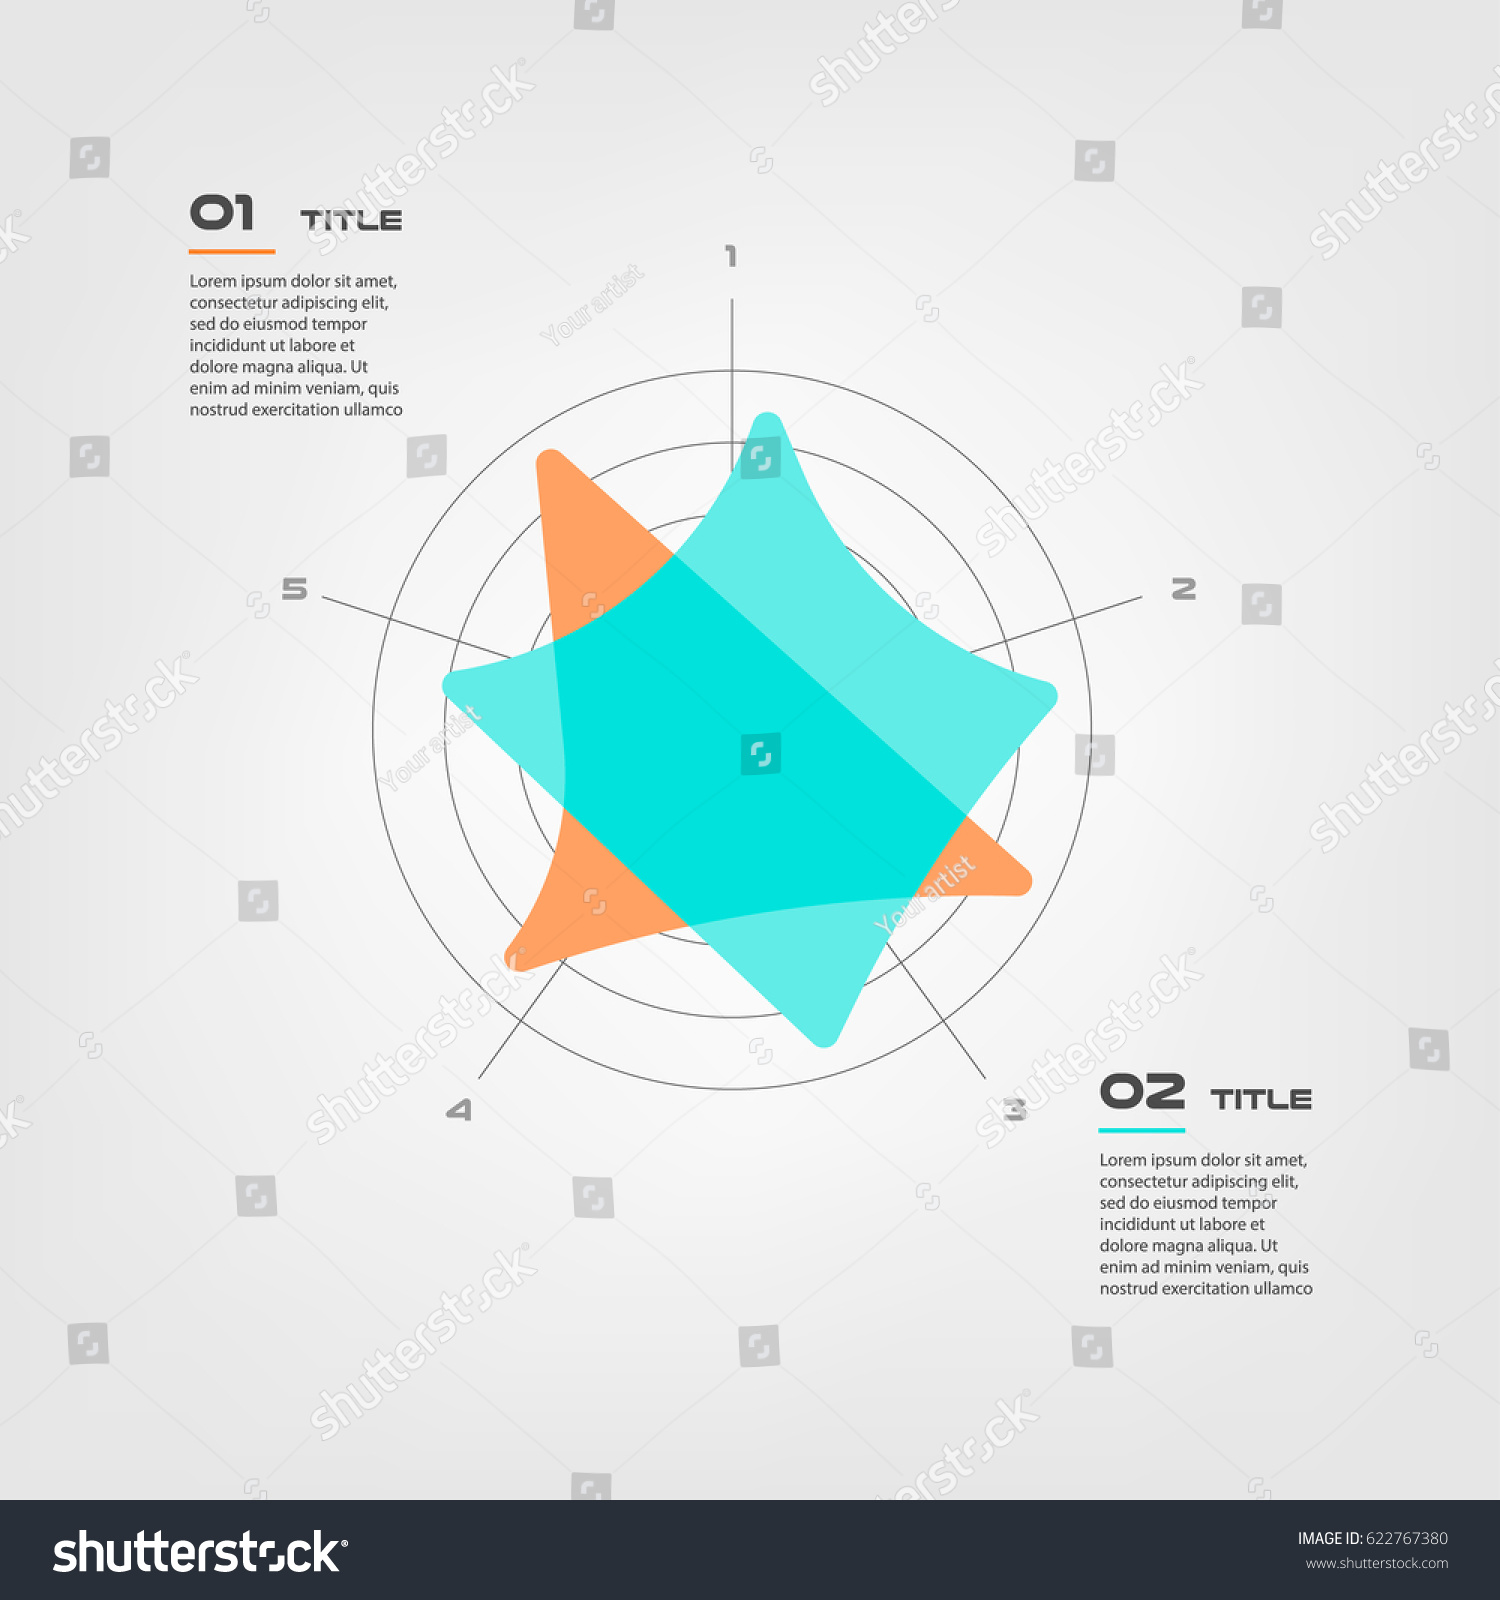 artist web diagram wiring diagram artist web diagram wiring diagramartist web diagram wiring diagram datasourceradar diagram elements color infographics some stock